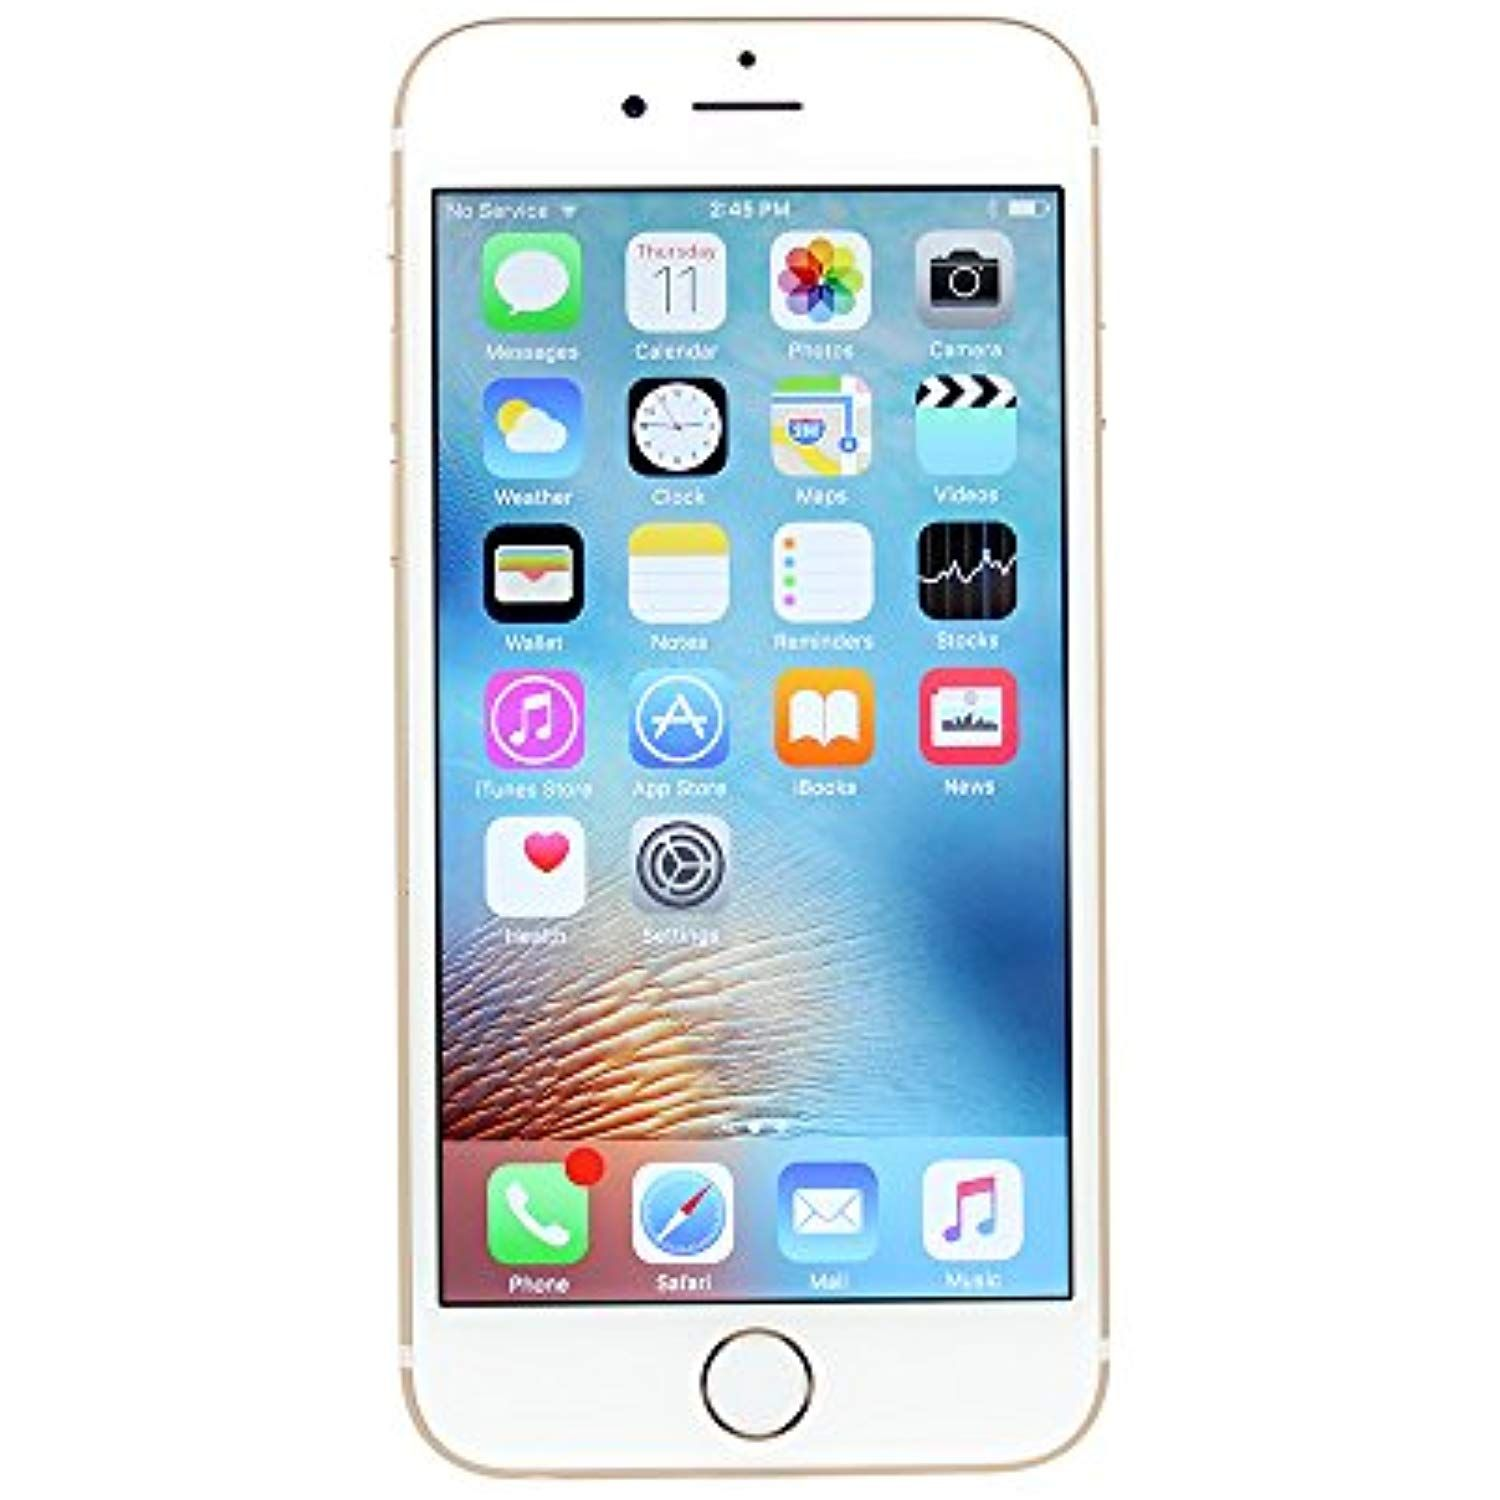 Apple Iphone 6s Plus Fully Unlocked 64gb Gold Certified Refurbished Details Can Be Found By Clicking On The Image Thi Apple Iphone 6s Plus Iphone Iphone Secrets